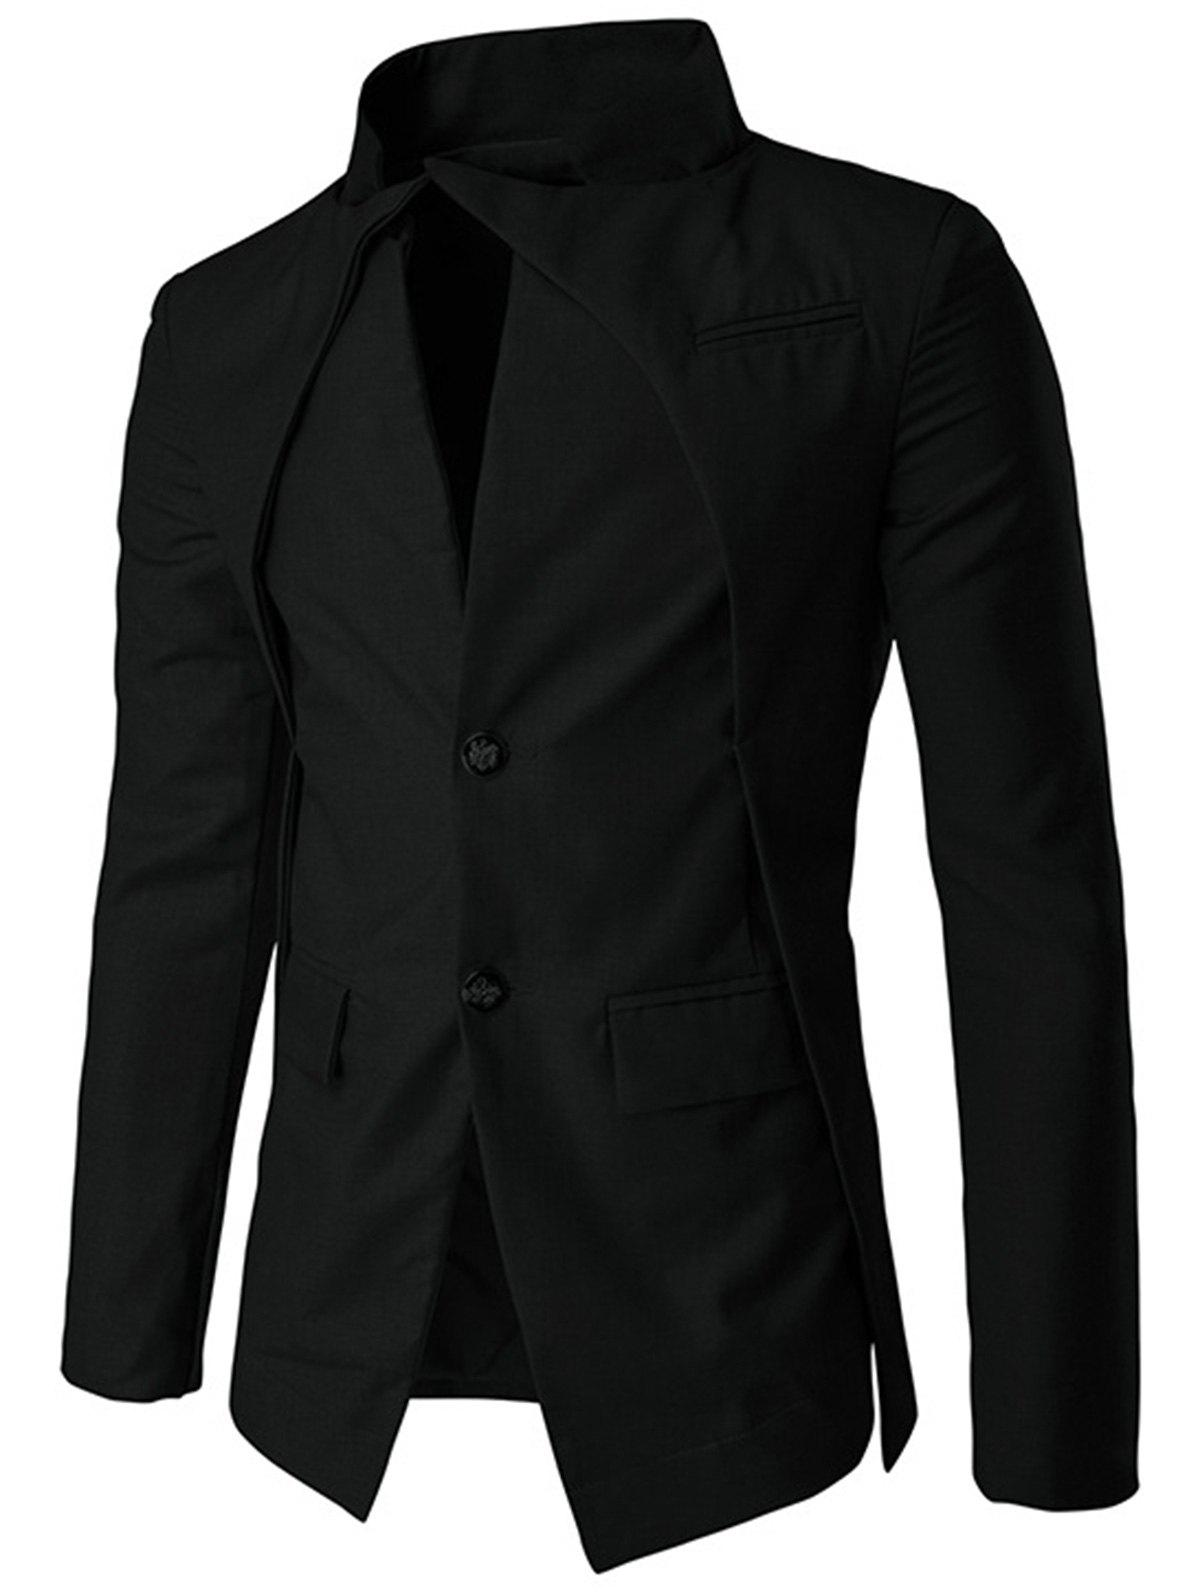 New Slim Fit Single Breasted Blazer